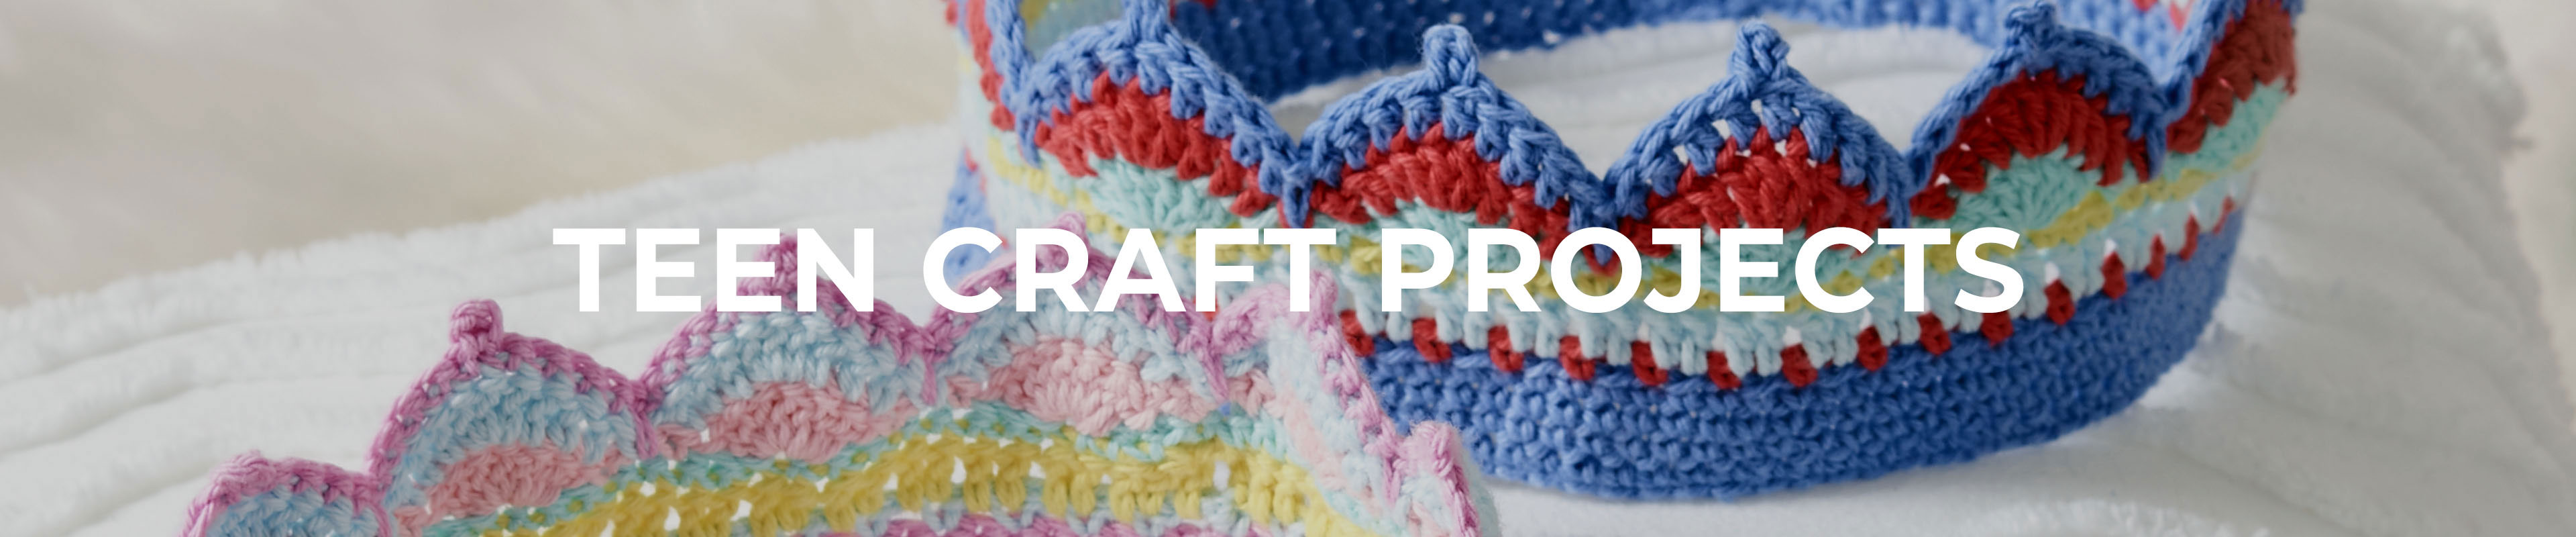 Teen Craft Projects